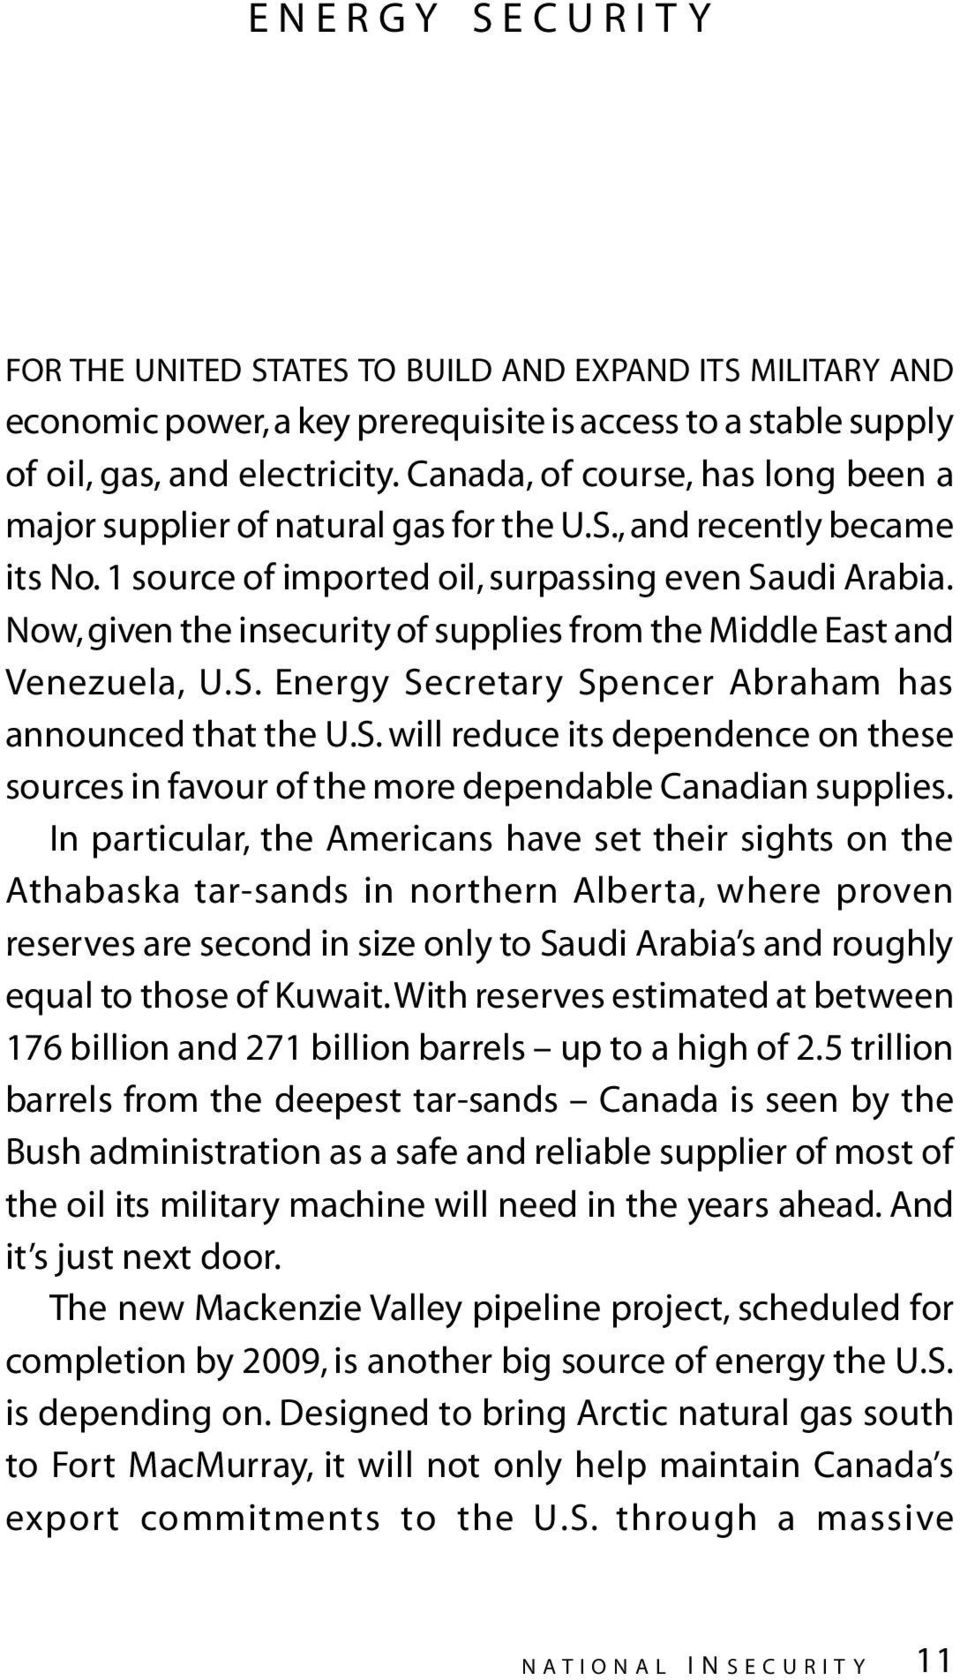 Now, given the insecurity of supplies from the Middle East and Venezuela, U.S. Energy Secretary Spencer Abraham has announced that the U.S. will reduce its dependence on these sources in favour of the more dependable Canadian supplies.